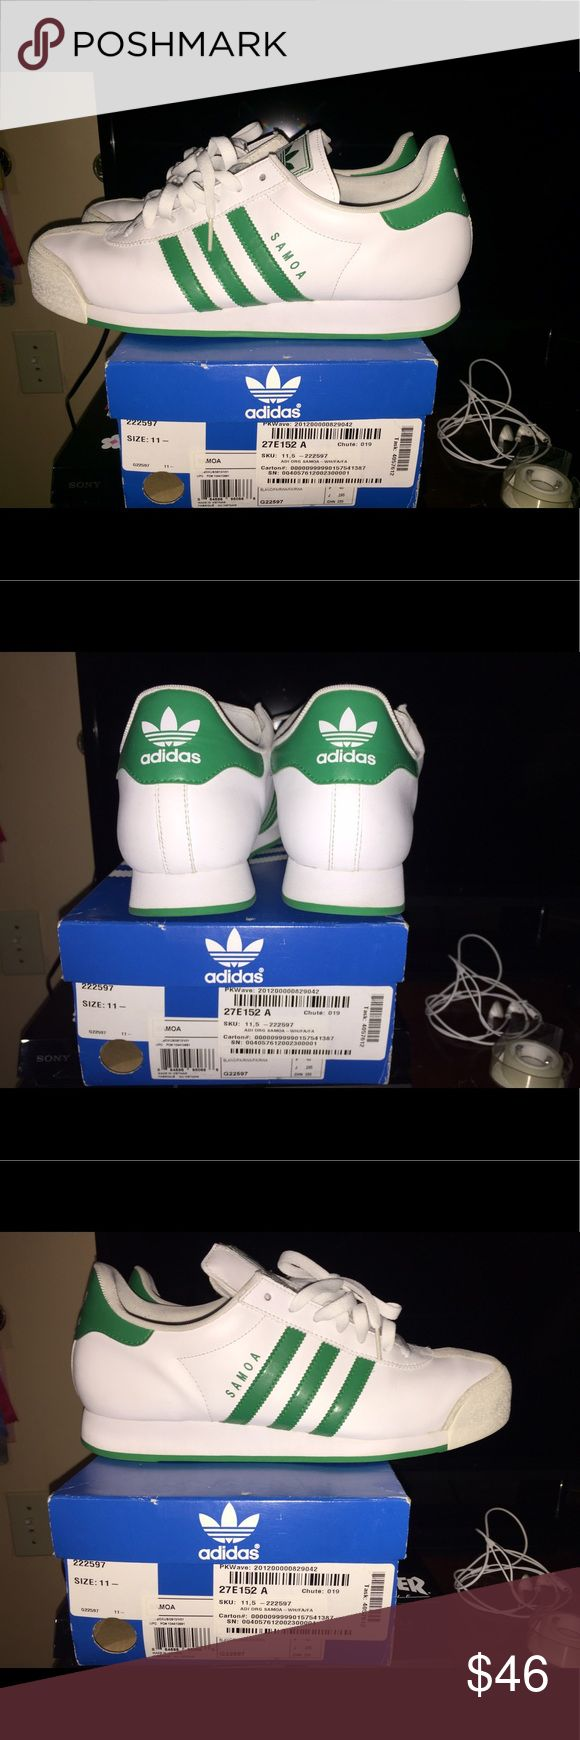 White/Green MEN Adidas Somas Adidas Somas white/gree 8.5/10 condition SIZE 11.5 Adidas Shoes Sneakers